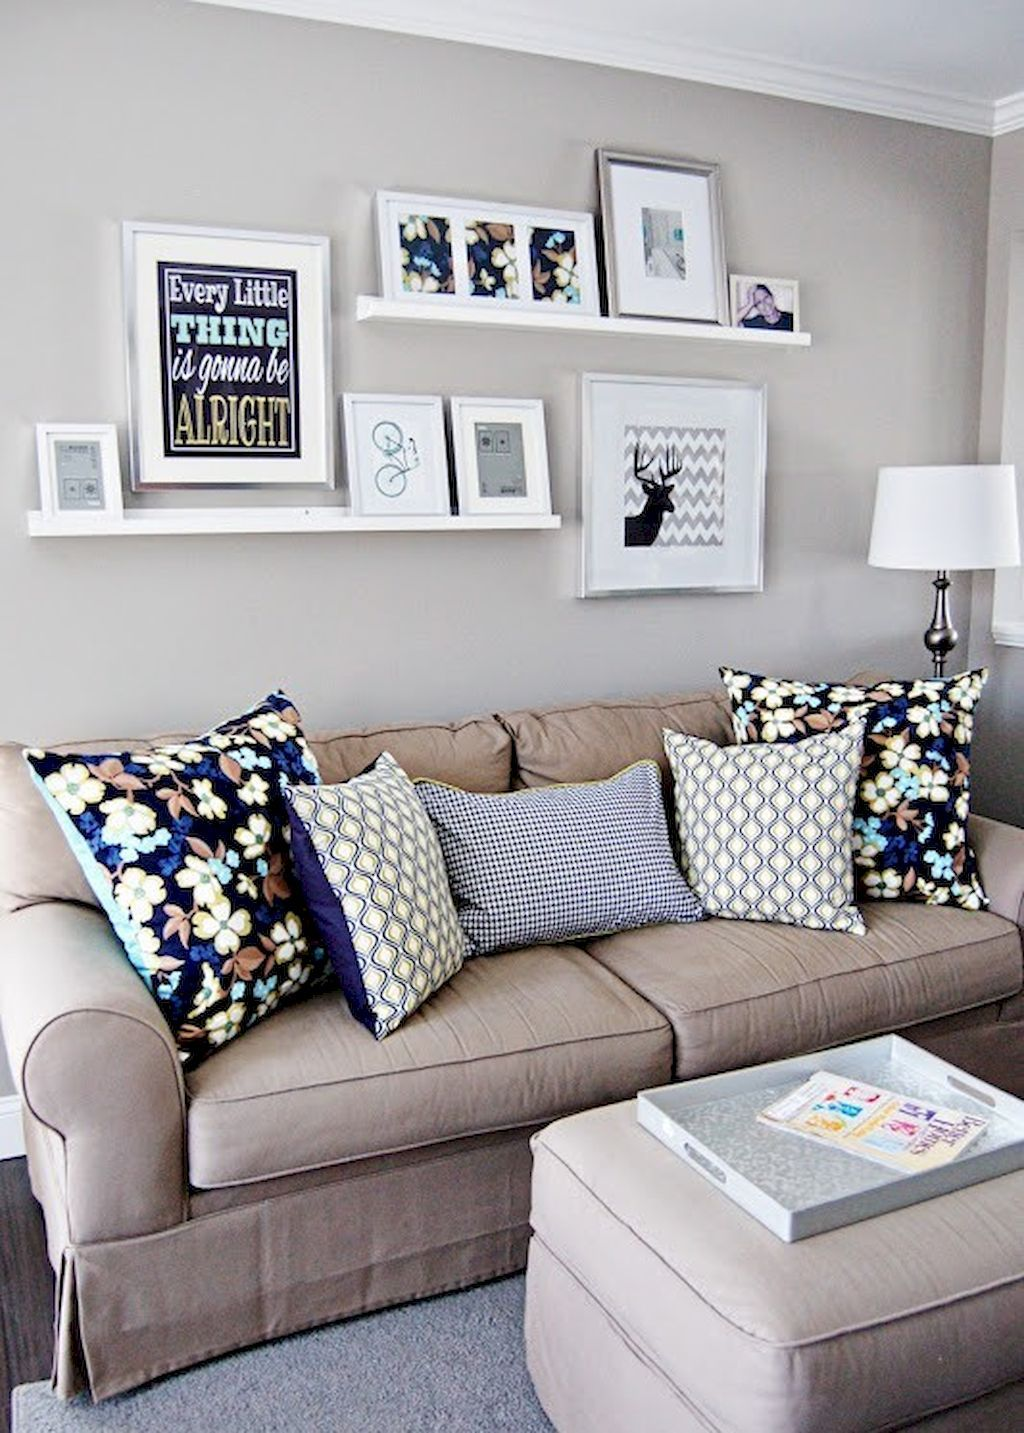 Best 40 Beautiful And Cute Apartment Decorating Ideas On A This Month